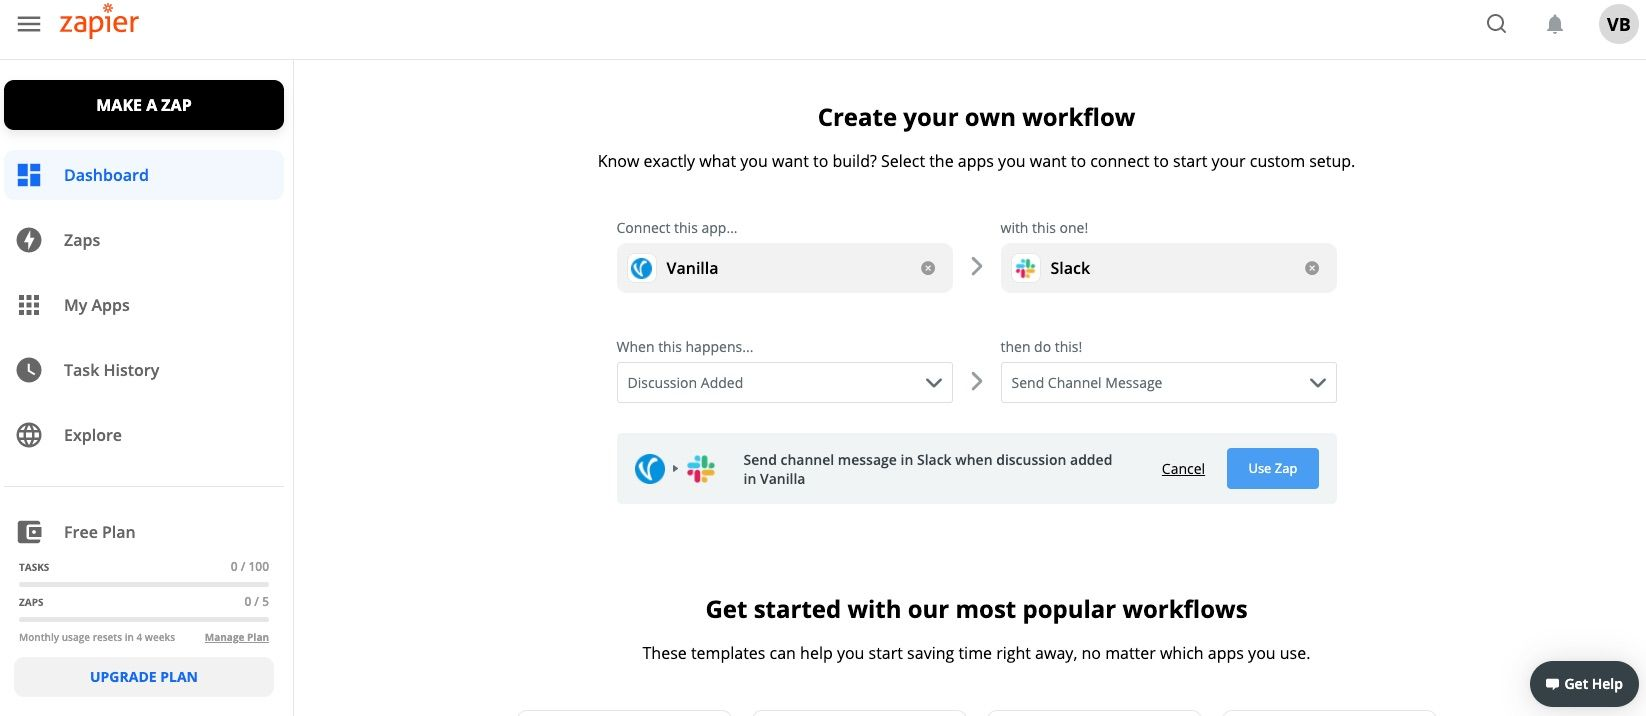 zapier integration workflow